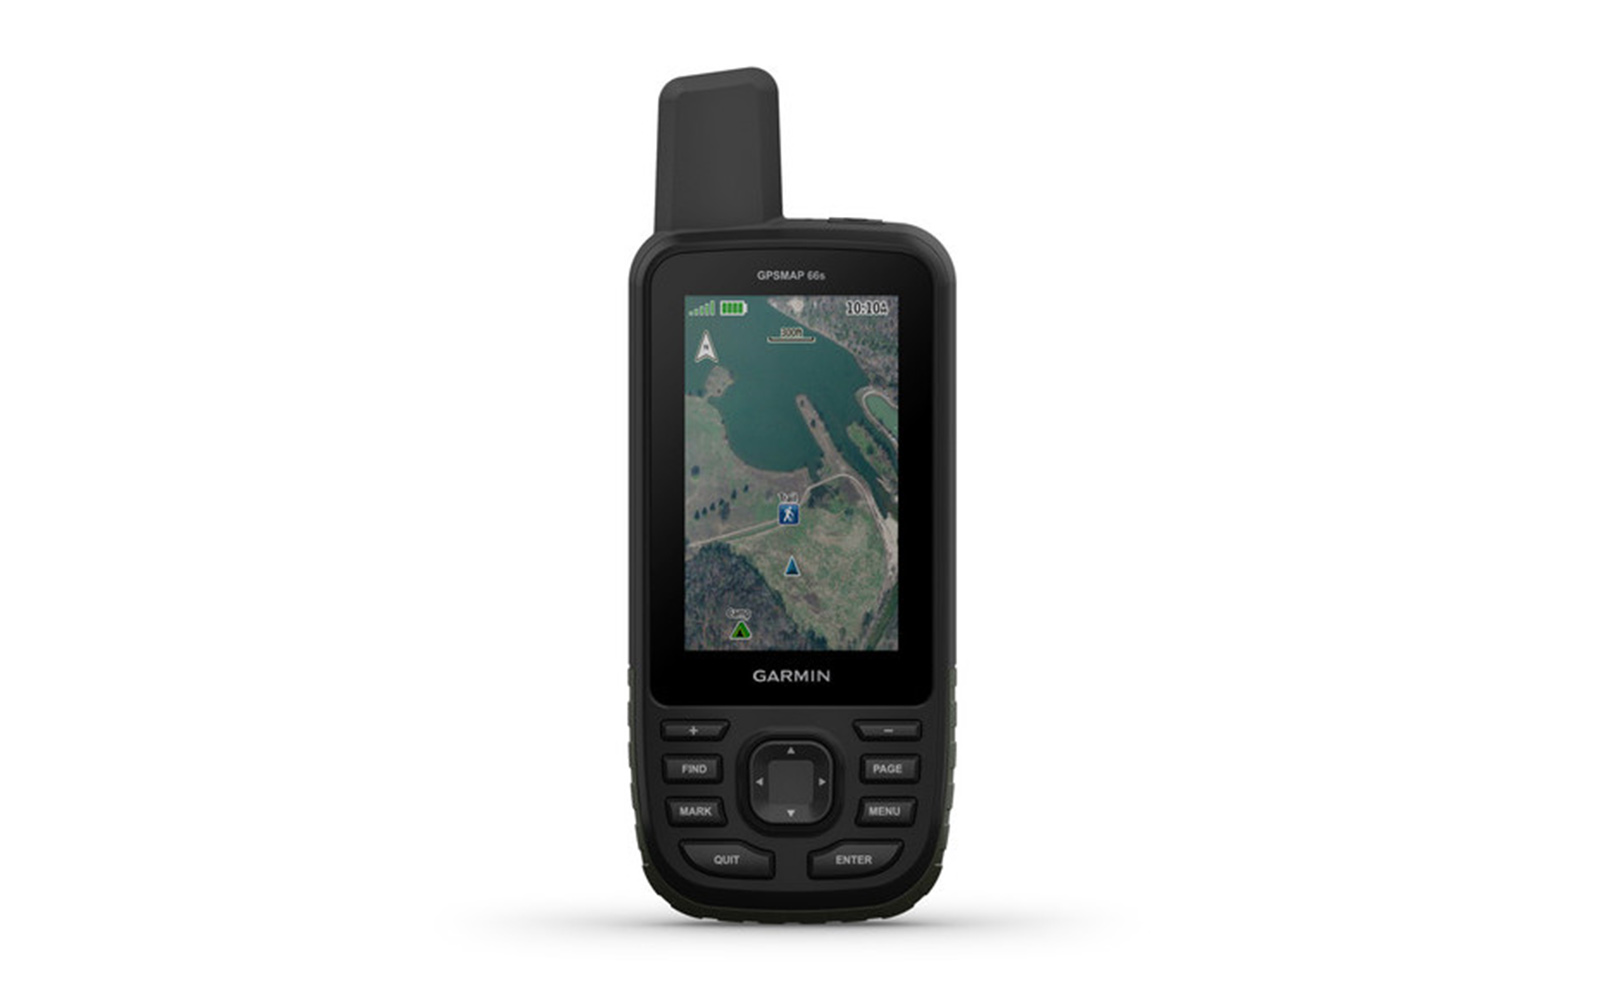 Garmin-GPSMAP 66s-boatshopping